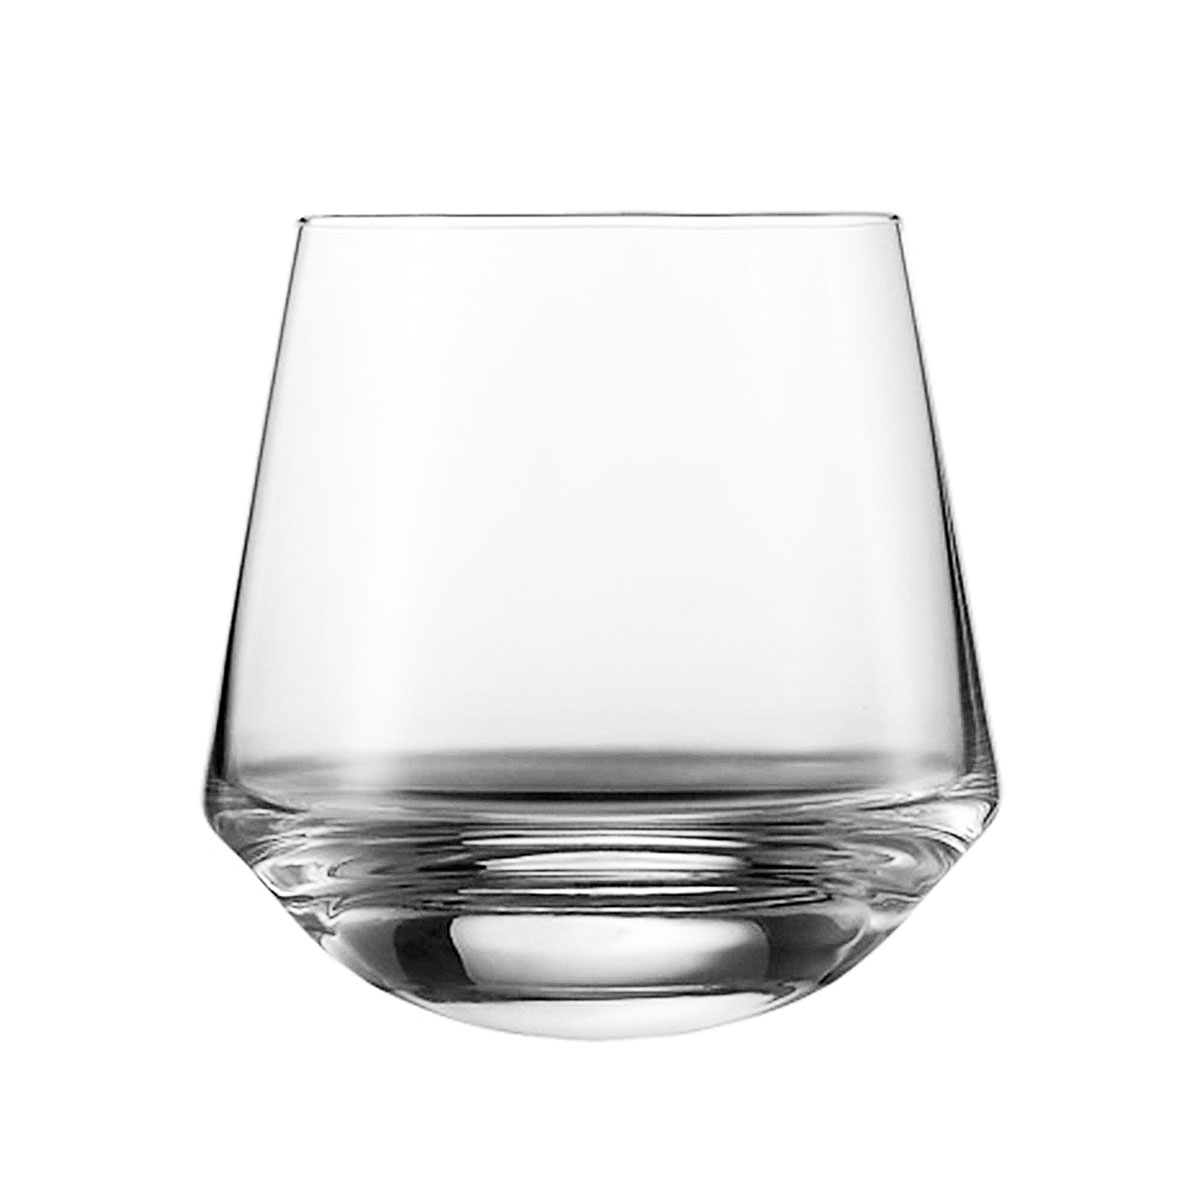 Schott Zwiesel Tritan Crystal, Pure Dancing Tumbler, Single